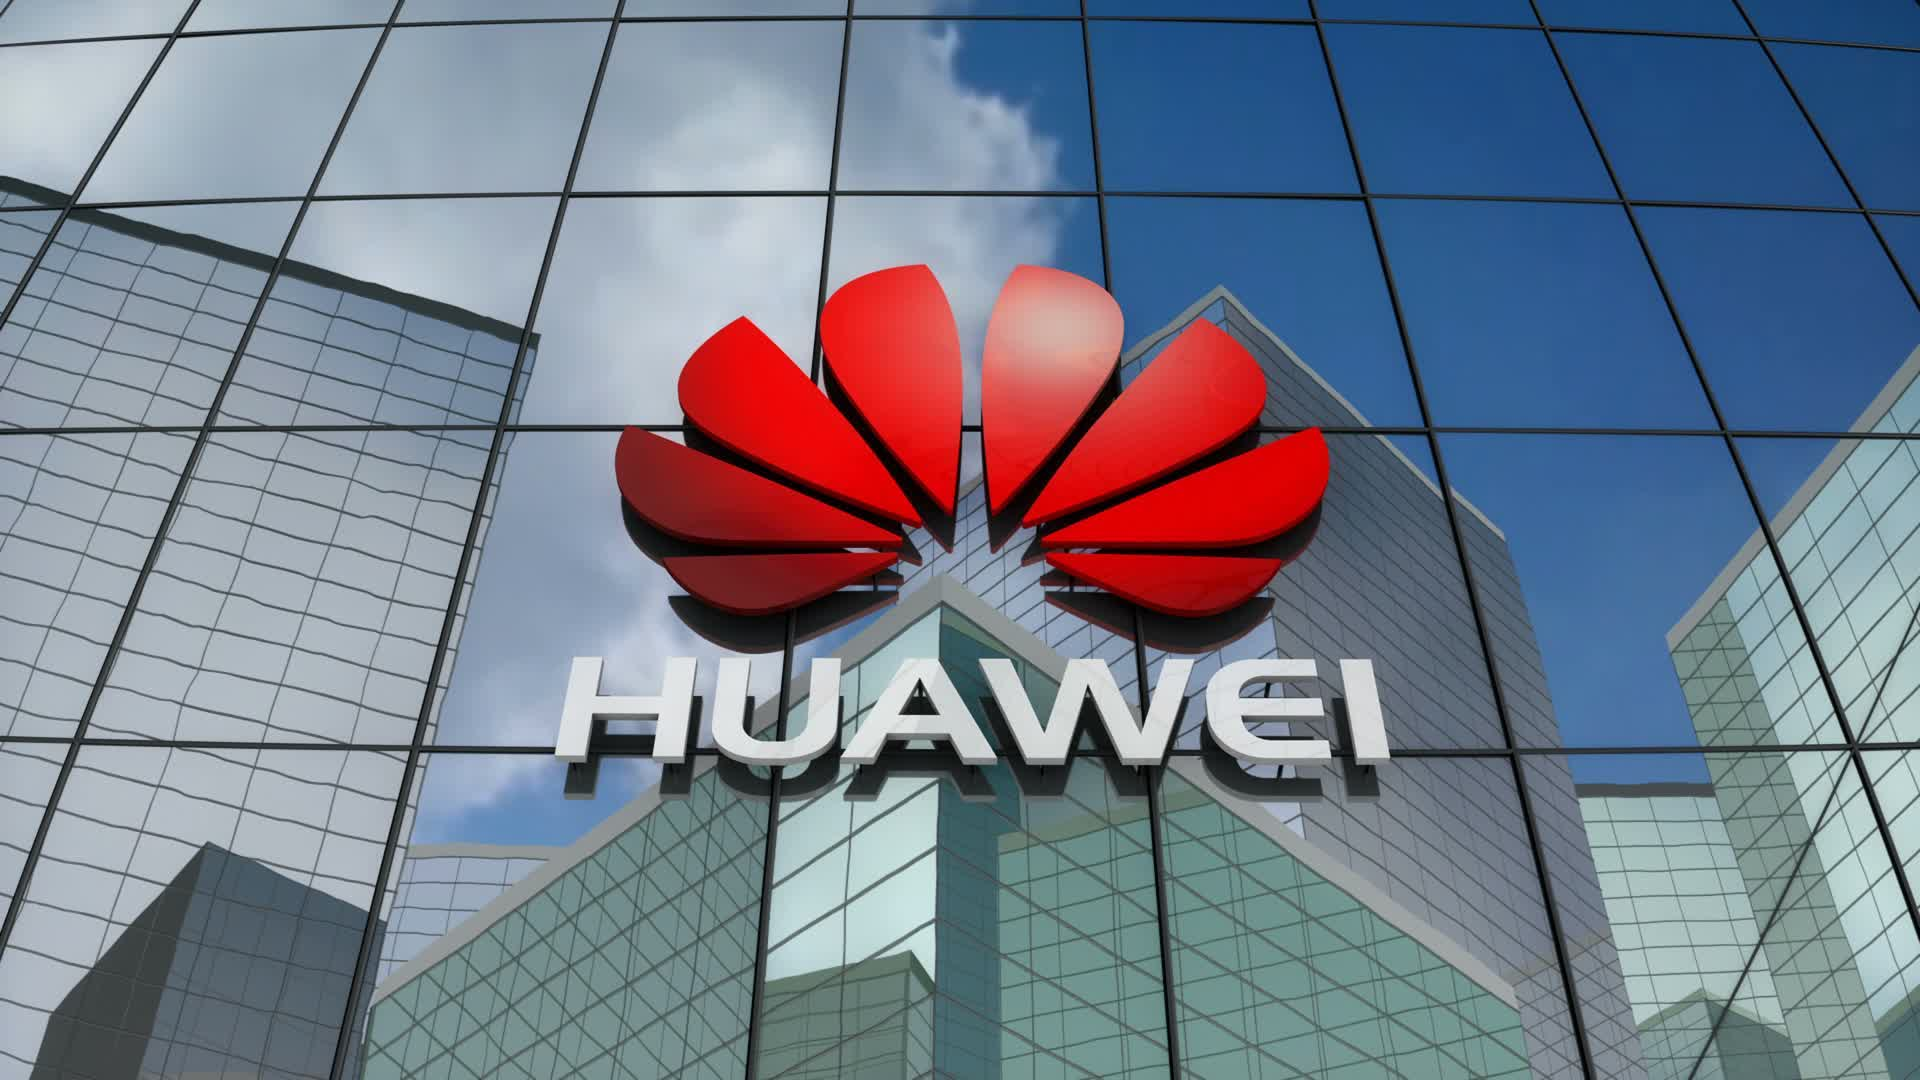 Huawei reportedly plans to build a manufacturing plant in Shanghai